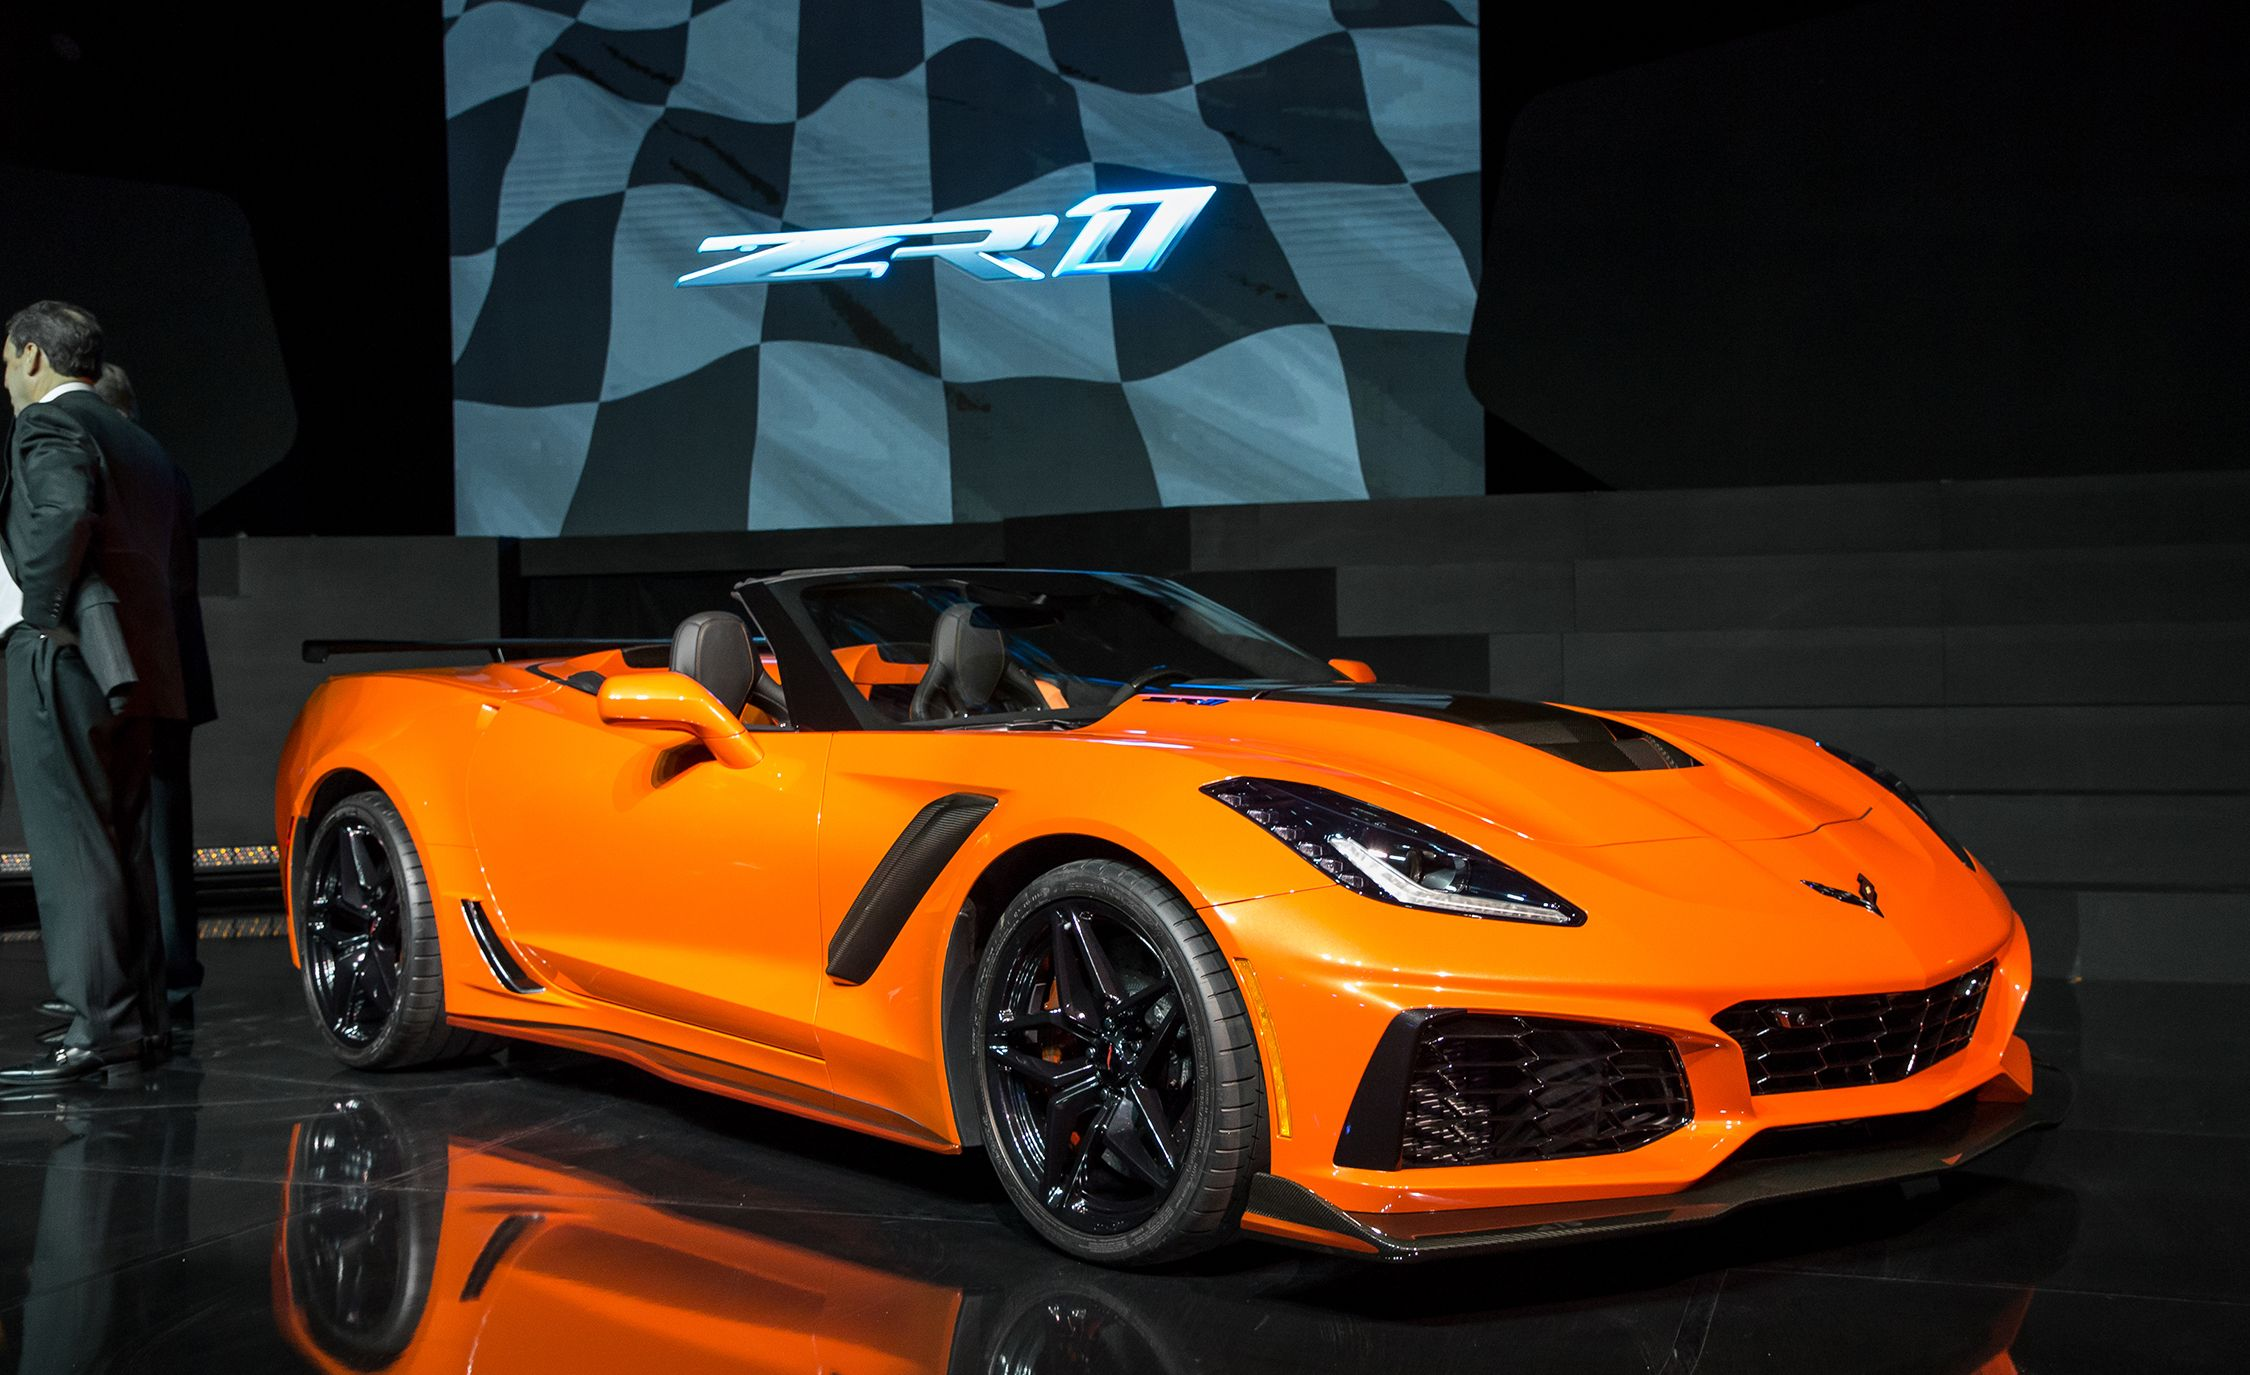 2019 Chevrolet Corvette ZR1 Convertible: Extreme, Extroverted, Expensive